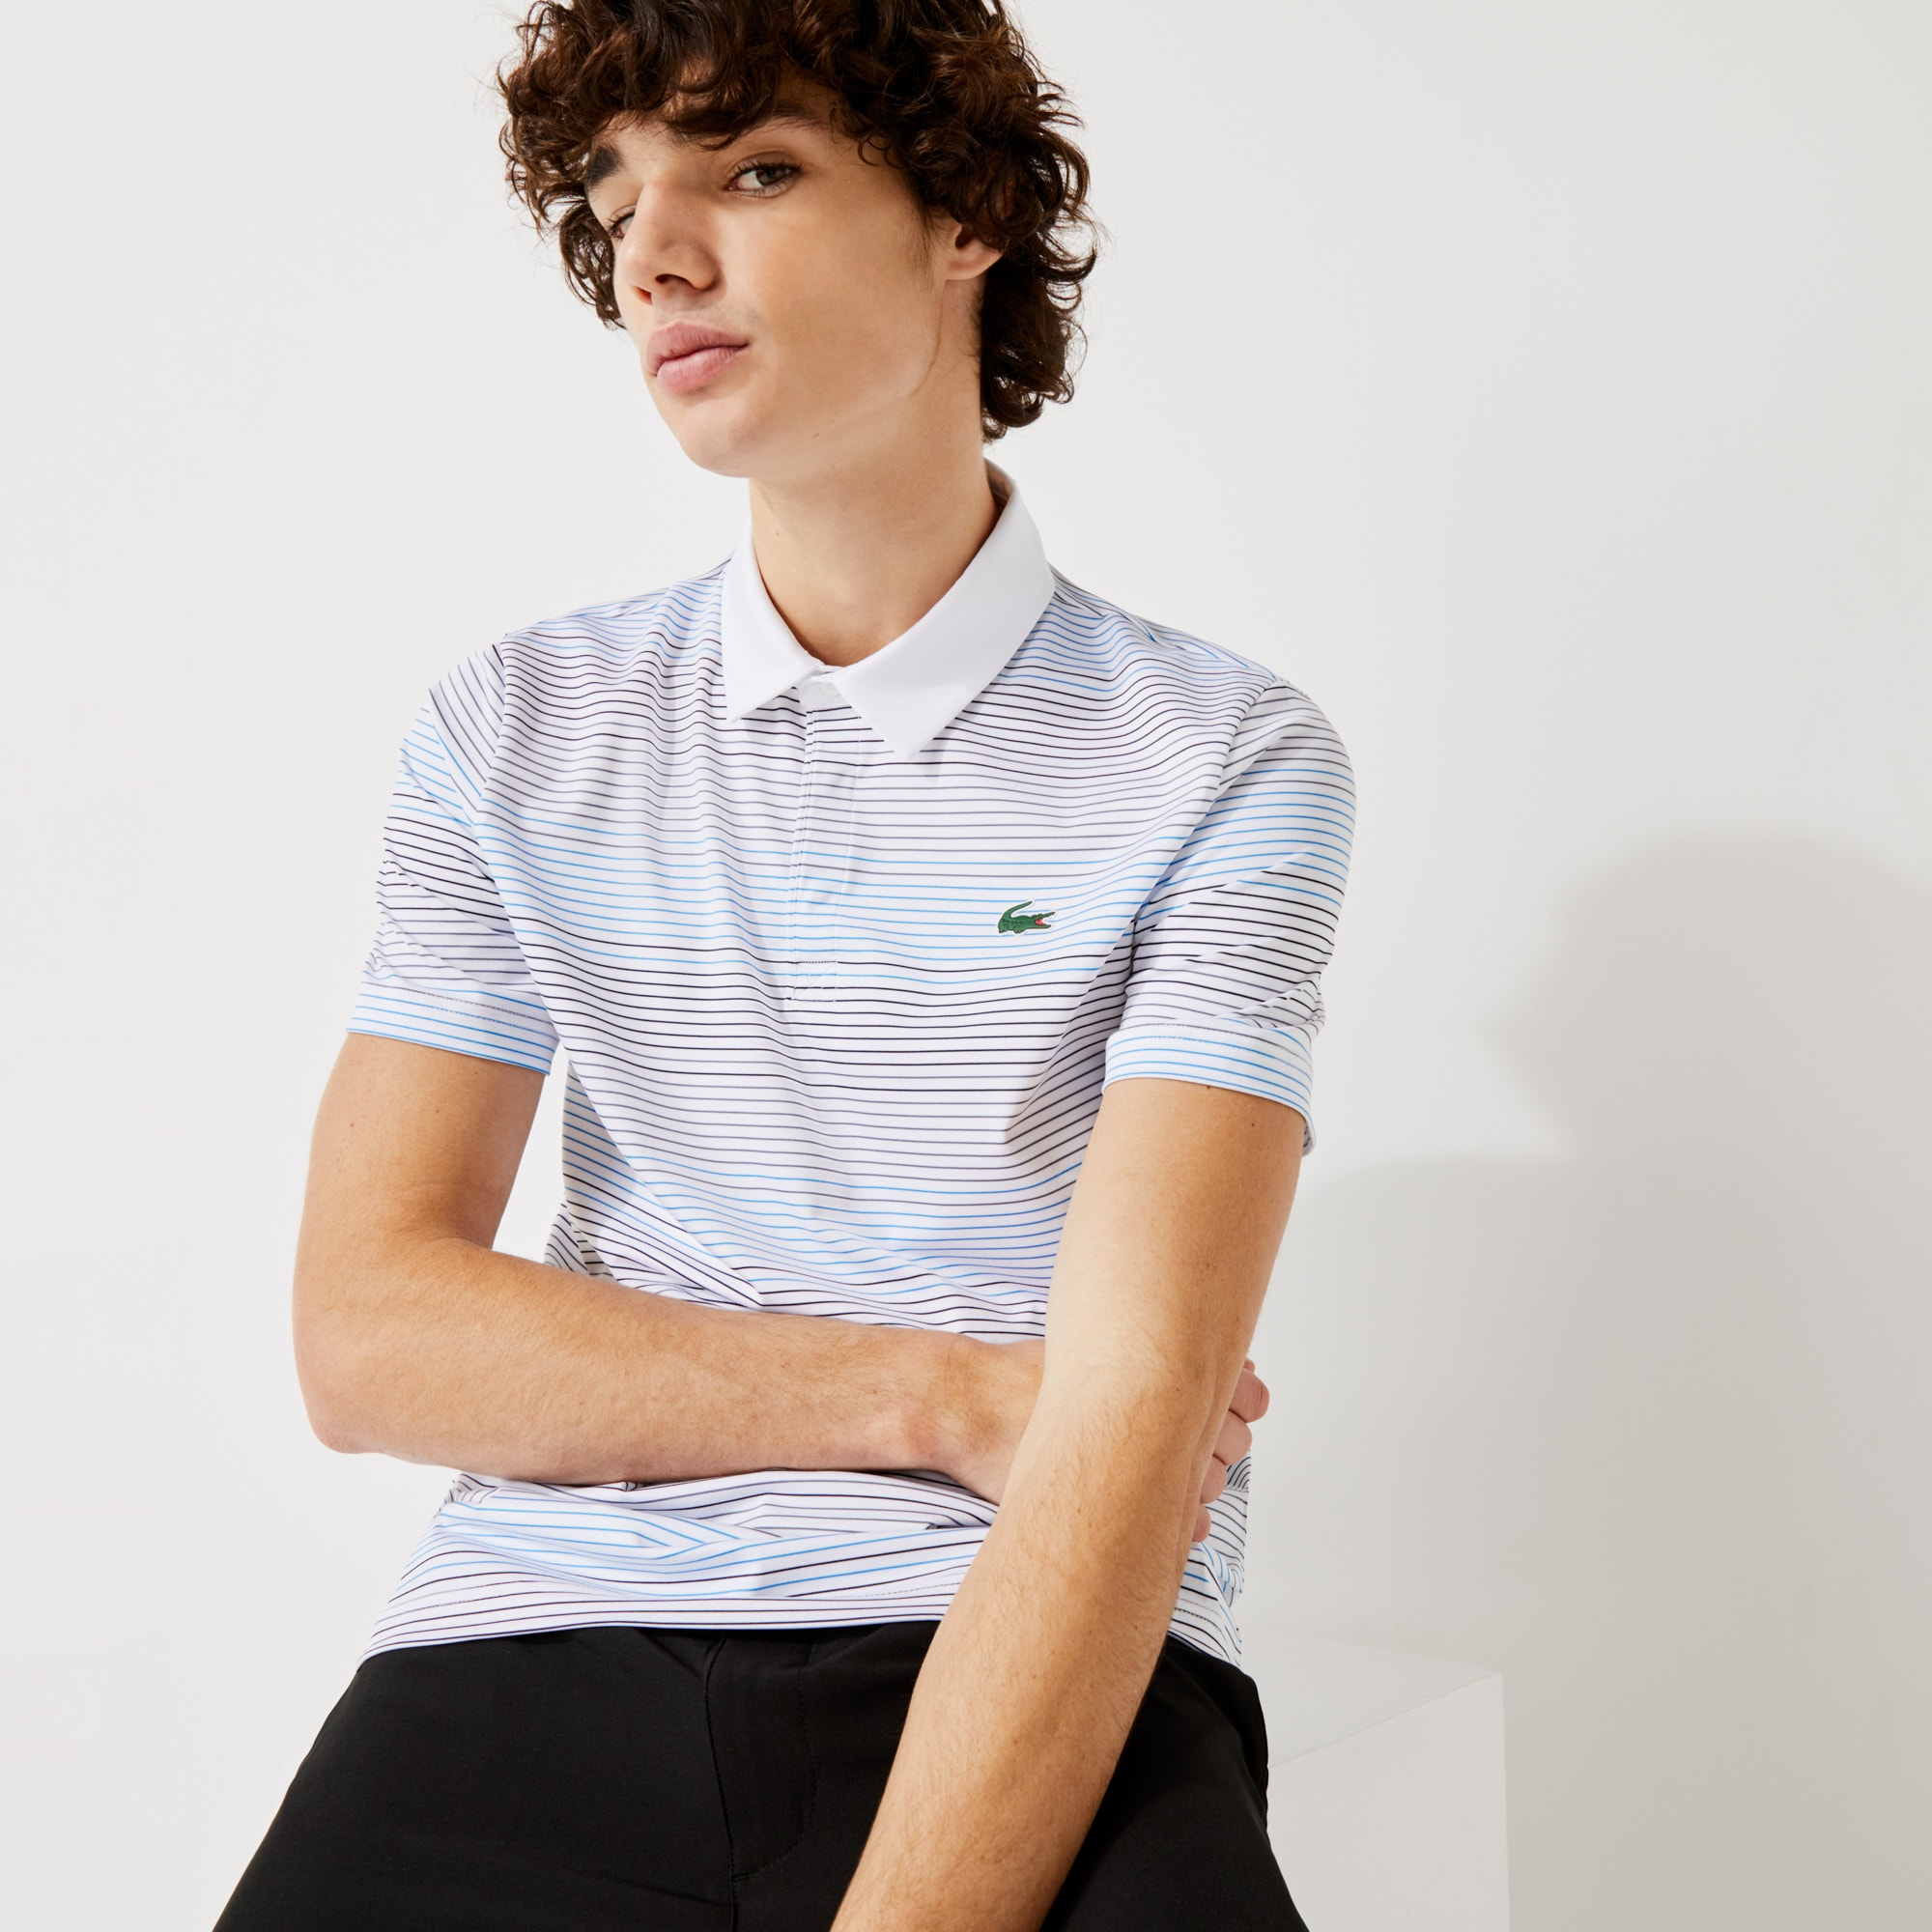 라코스테 Lacoste Men's SPORT Striped Breathable Stretch Golf Polo Shirt